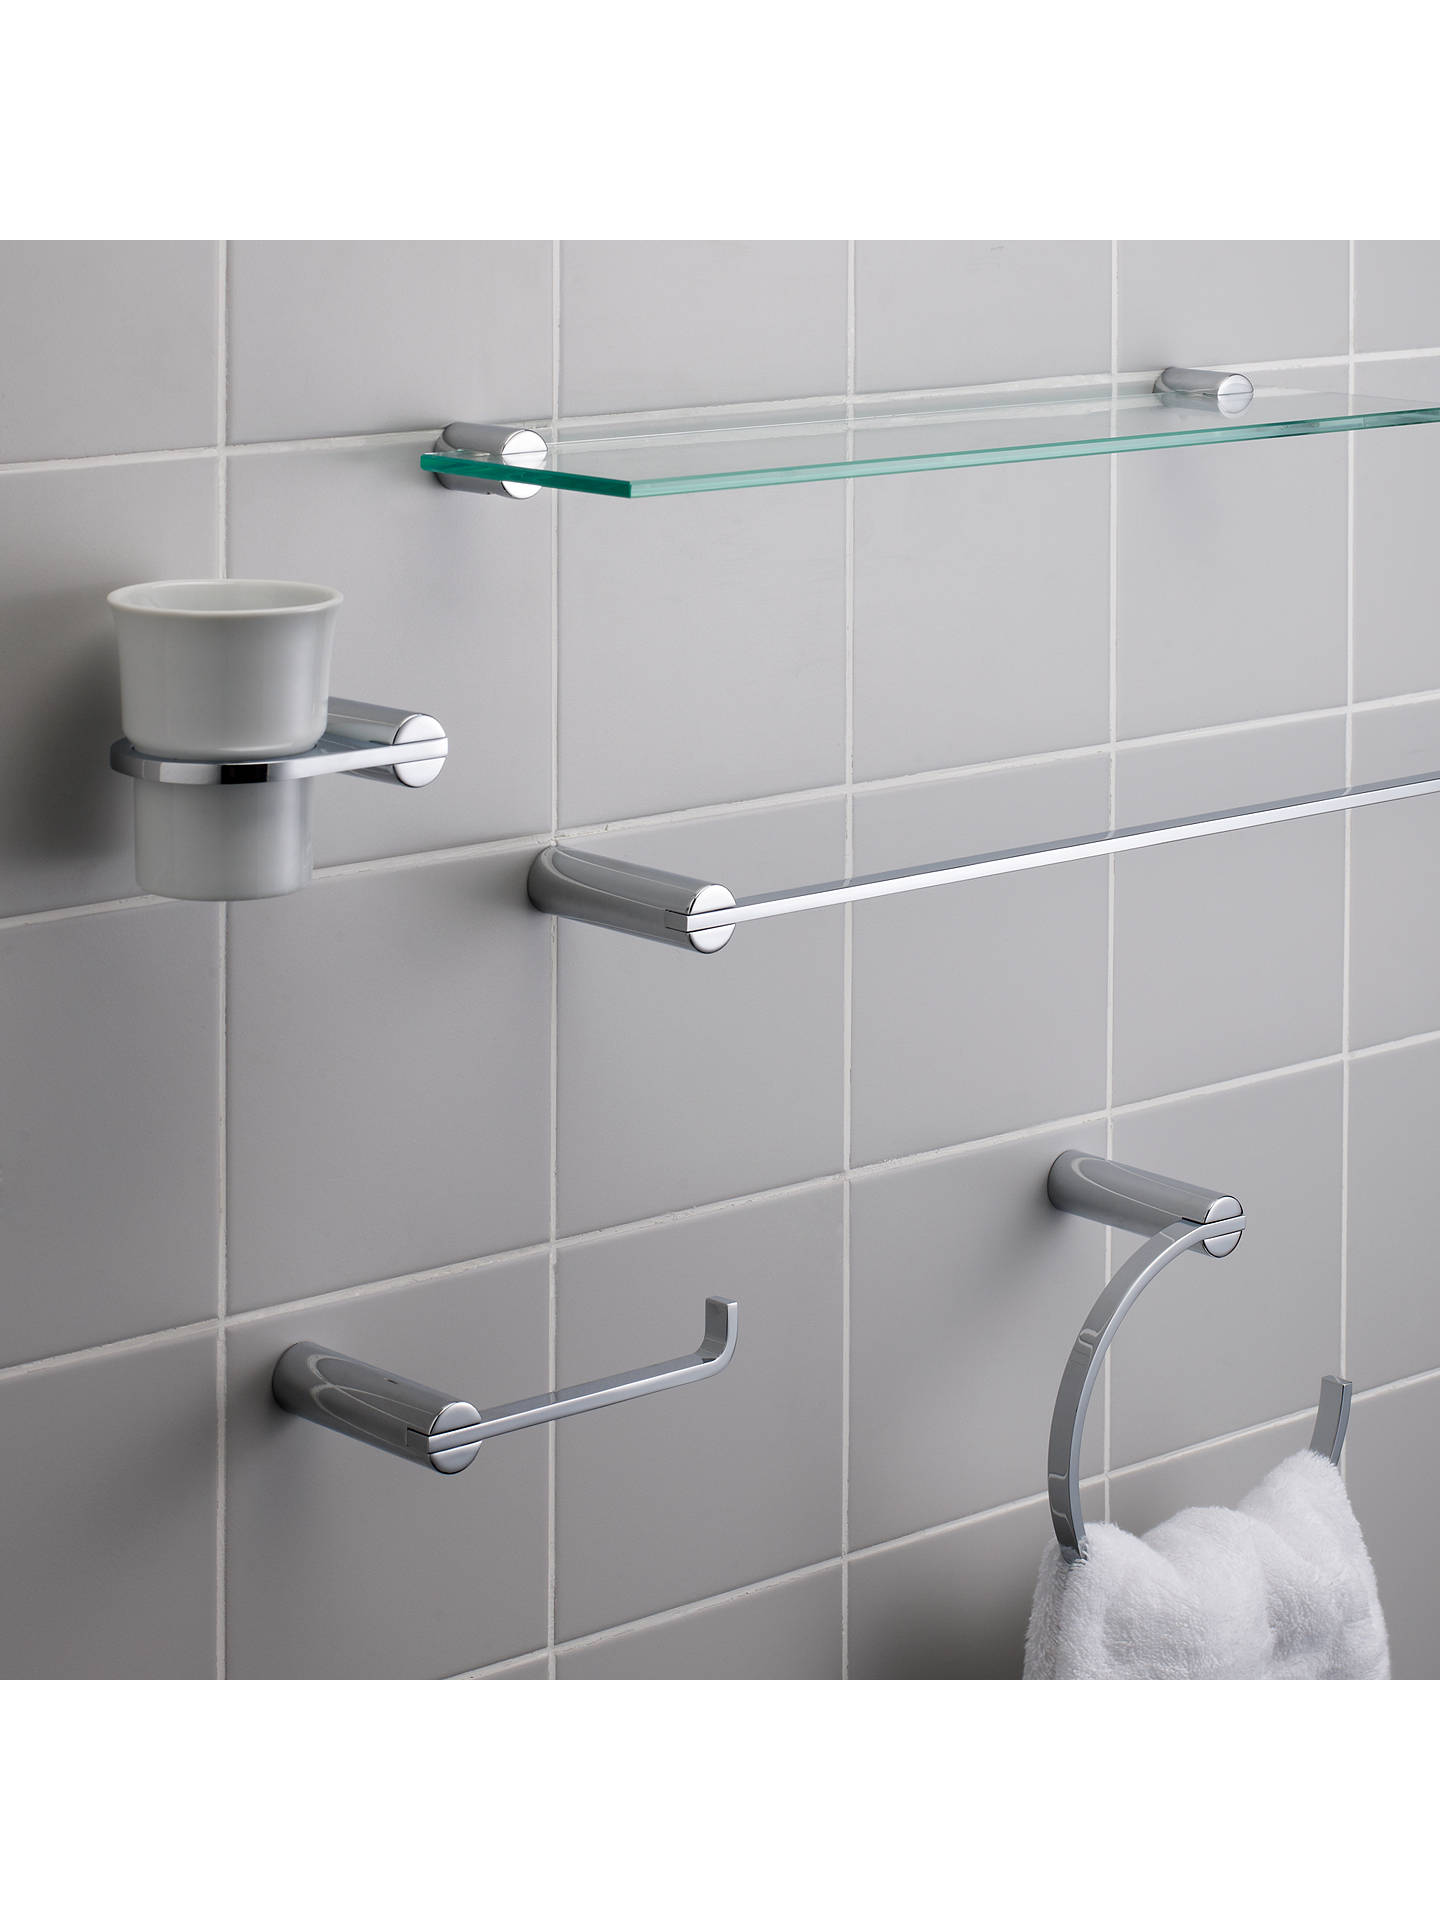 BuyJohn Lewis & Partners Solo Toilet Roll Holder, Chrome Online at johnlewis.com